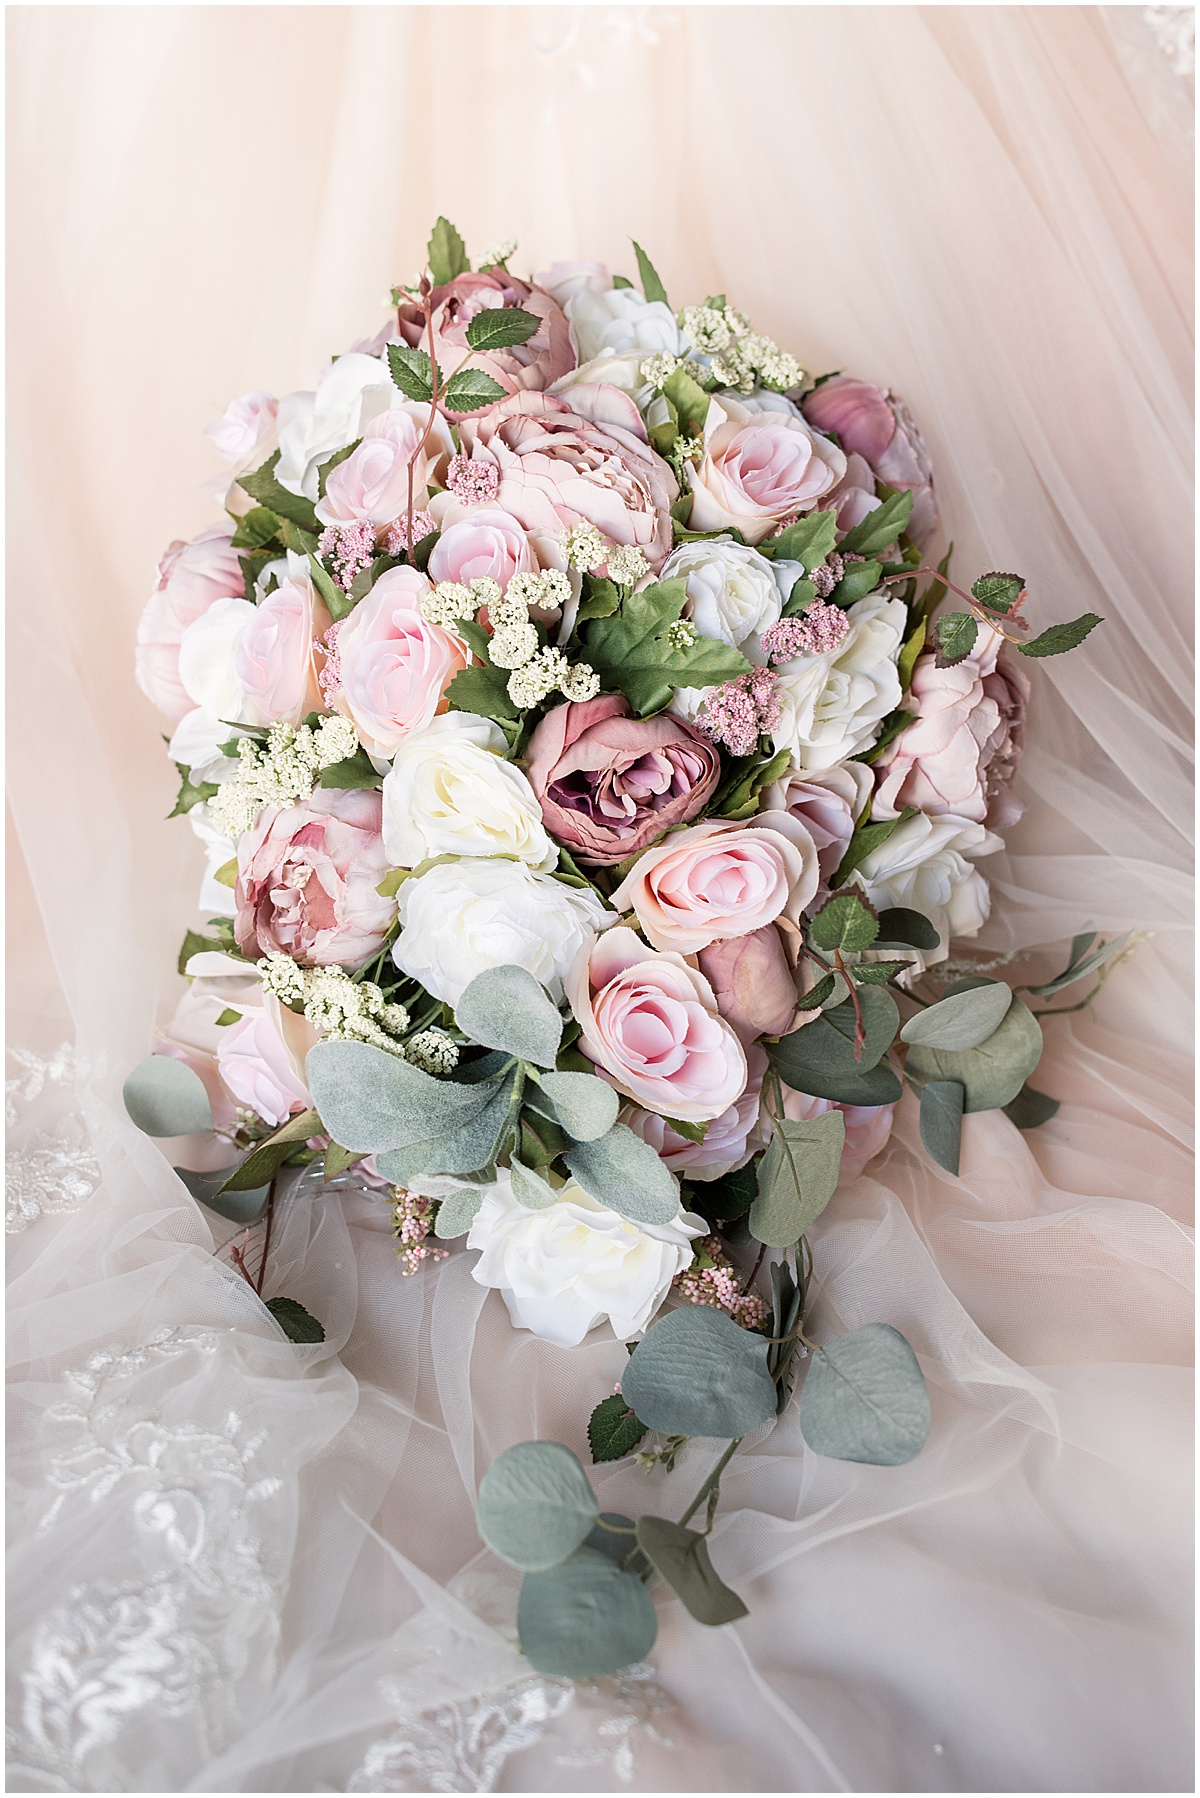 Bouquet for wedding at Wea Creek Orchard in Lafayette, Indiana